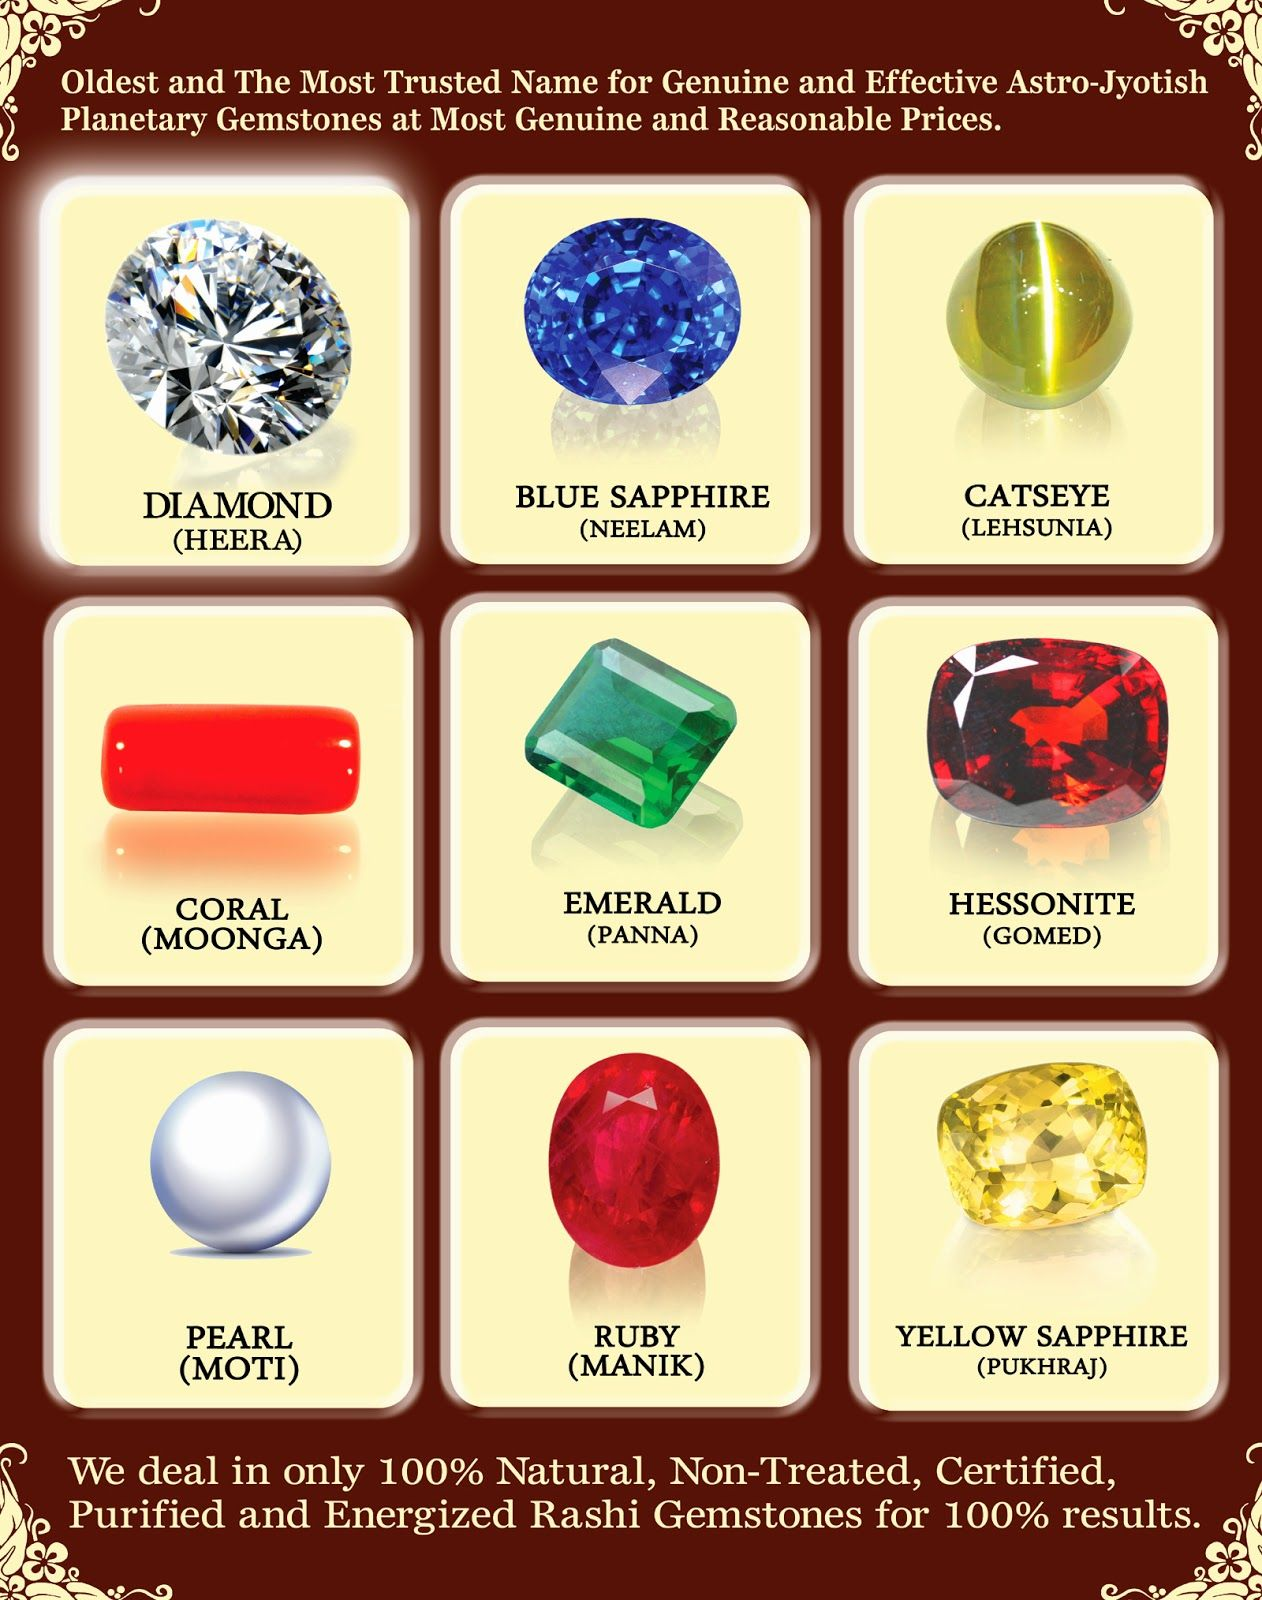 nilam from of fine neelam lot planetary quality five facts sapphire gemstone ratna blue arya